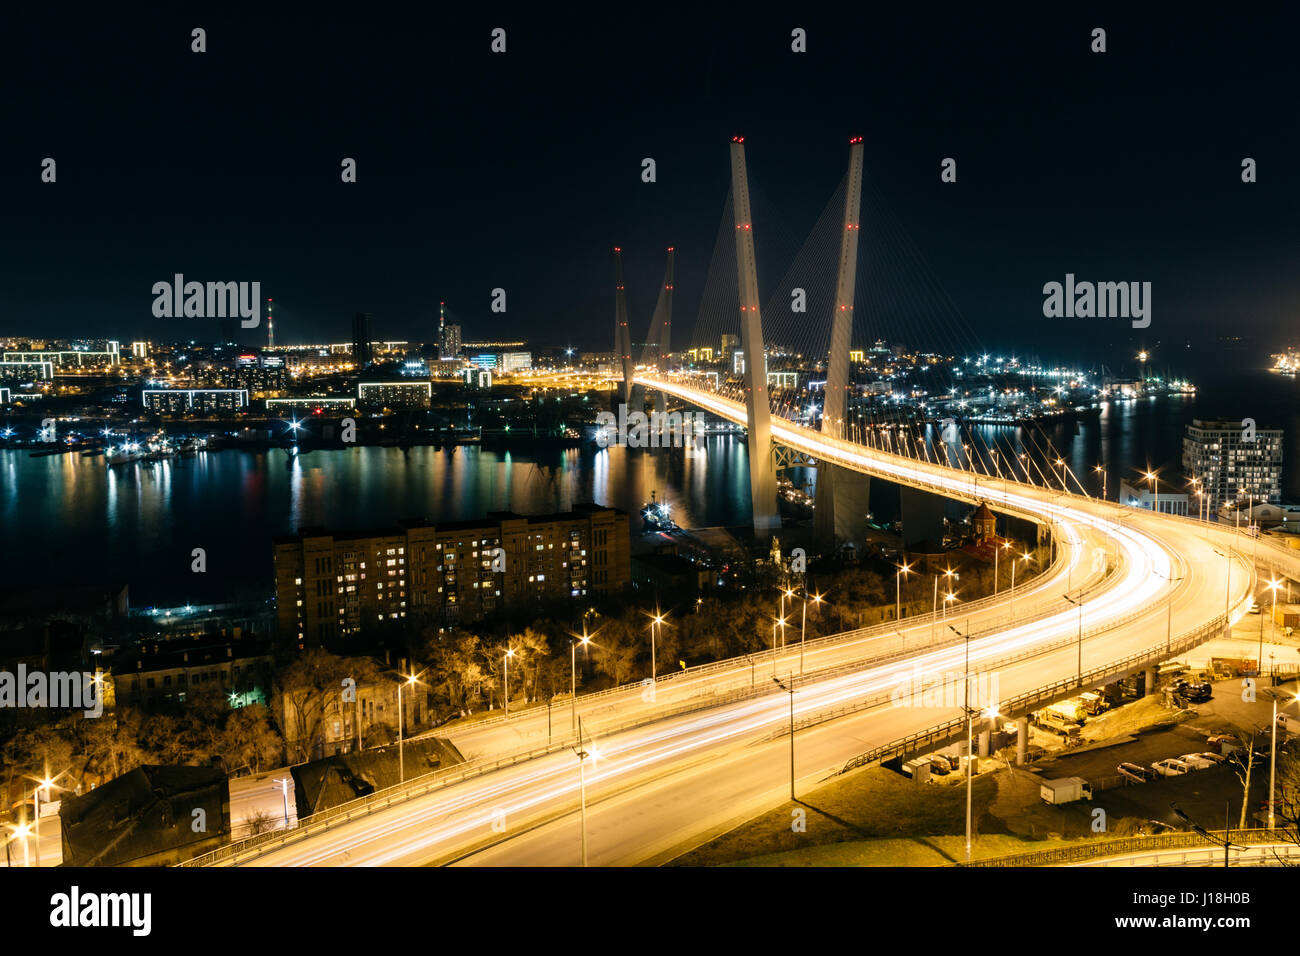 The bridge across Zolotoy Rog (Golden Horn) Bay in Vladivostok, Russia. - Stock Image